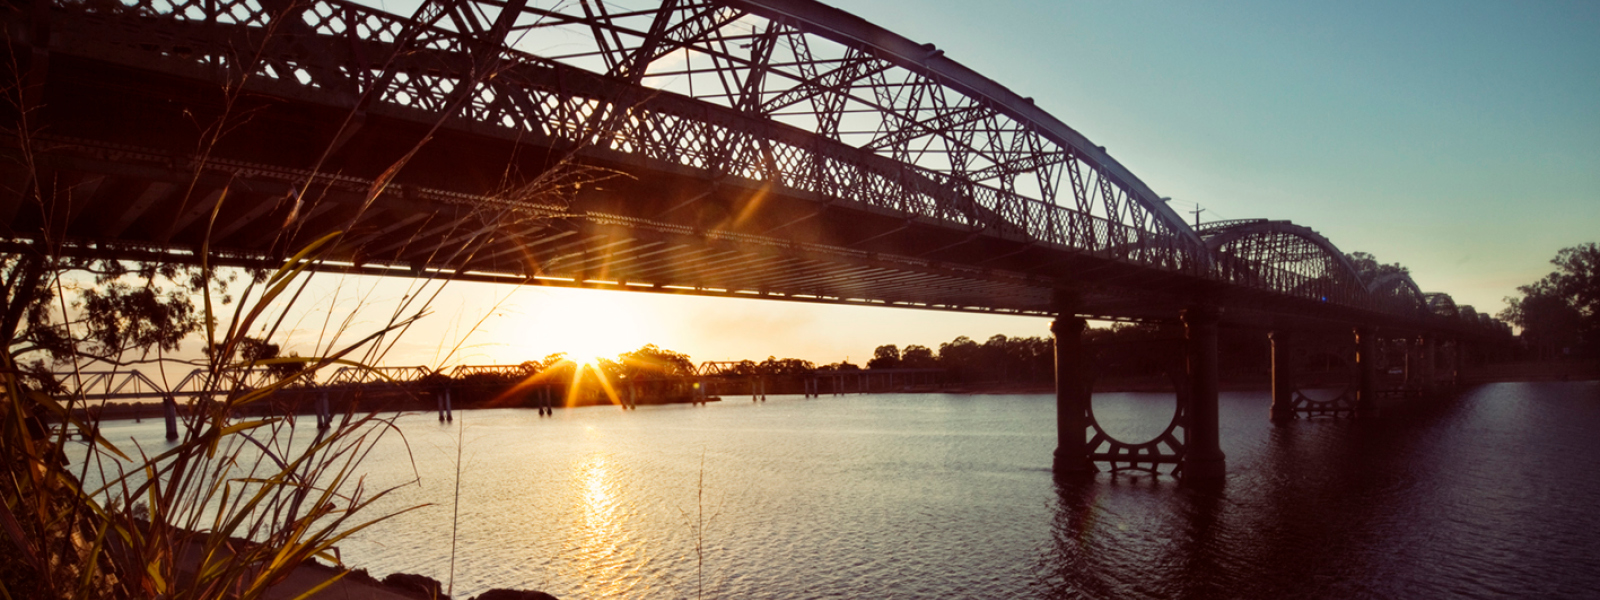 Burnett traffic bridge over burnett river at sunset